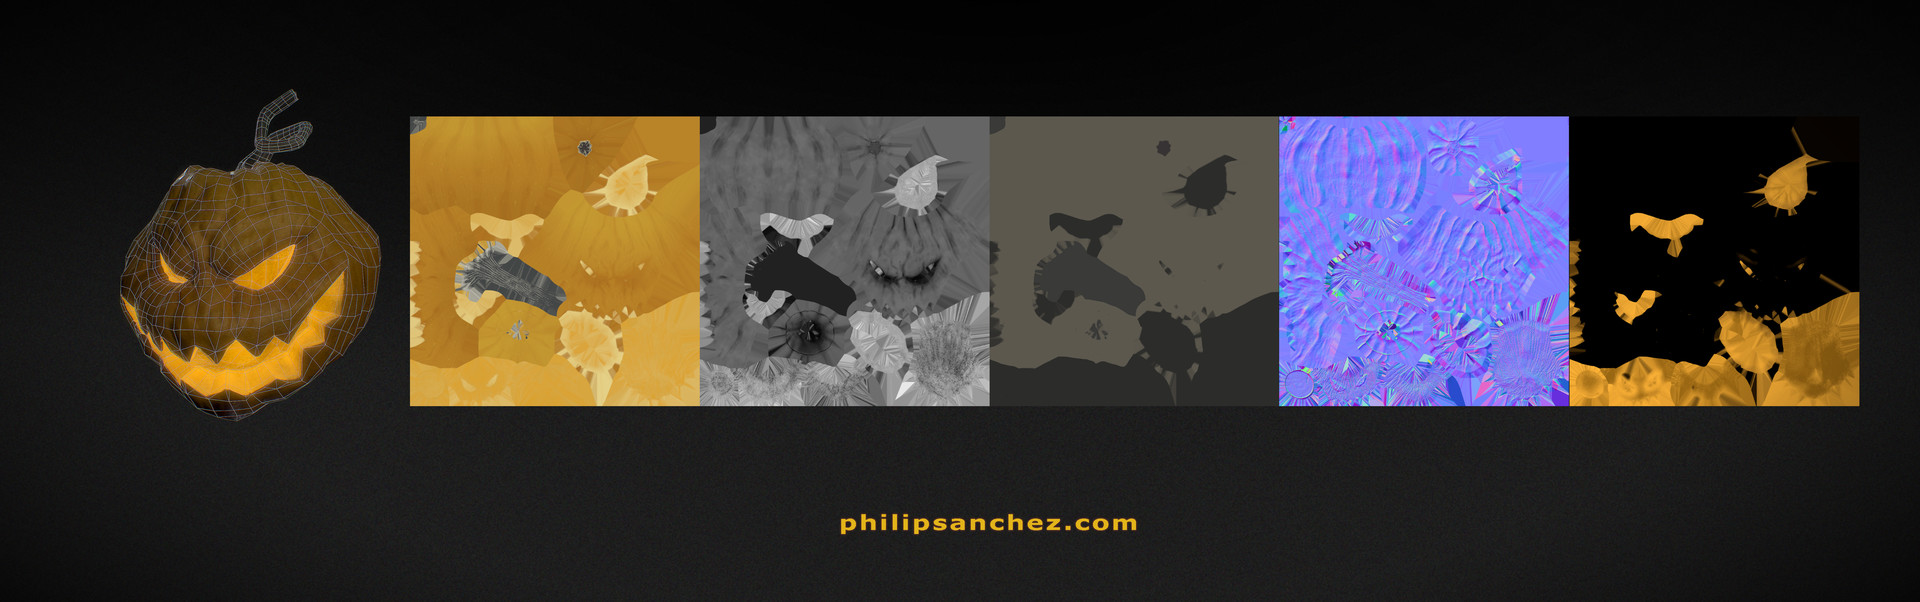 Philip sanchez jack 02